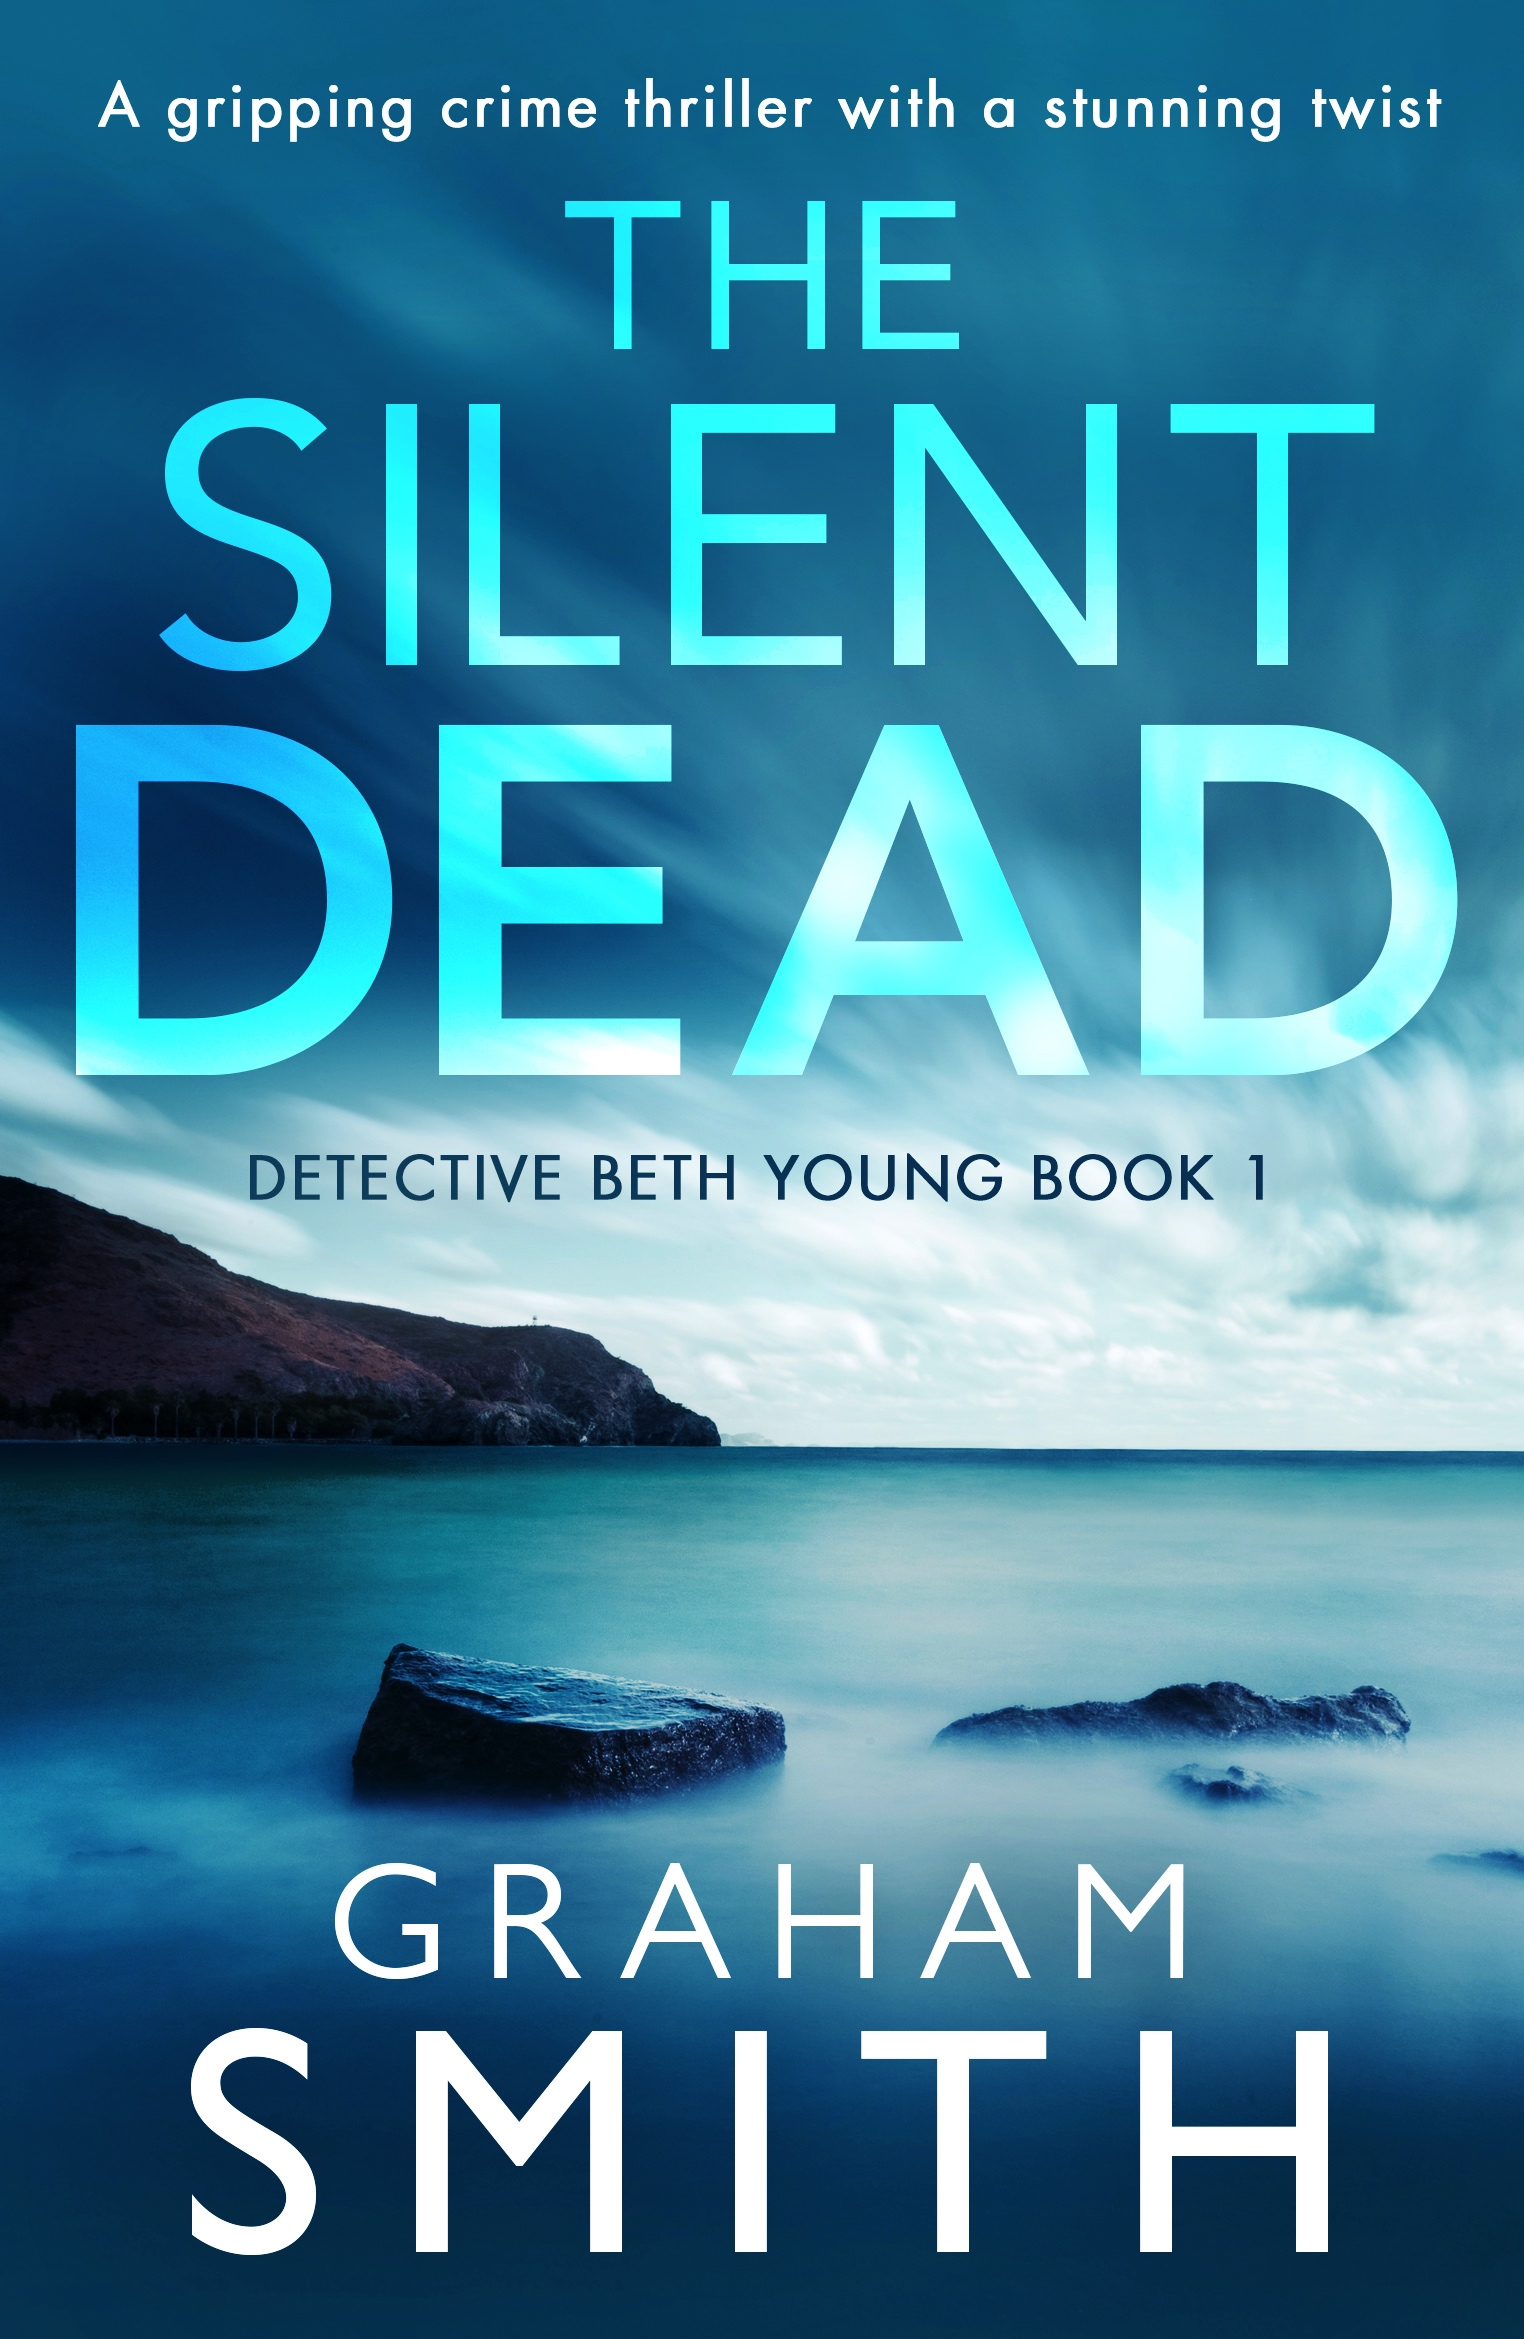 #BookReview of The Silent Dead by Graham Smith @GrahamSmith1972 @nholten40 @bookouture